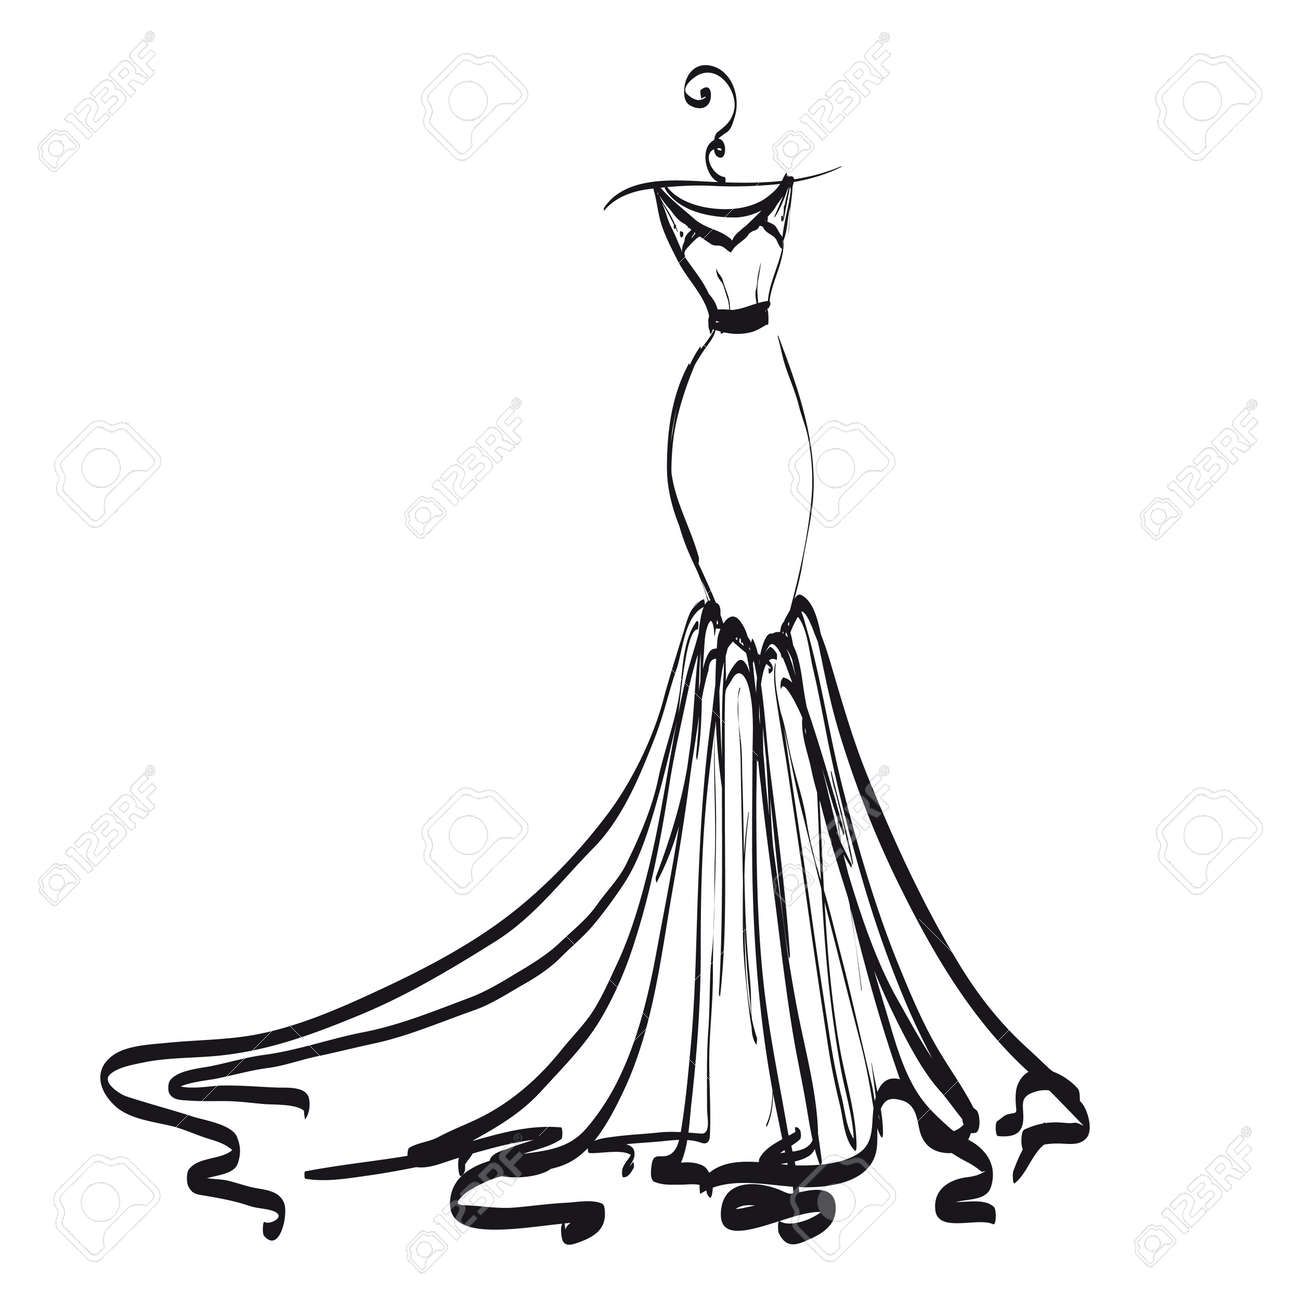 Wedding Dress Design Black And White Royalty Free Cliparts Vectors And Stock Illustration Image 90460635